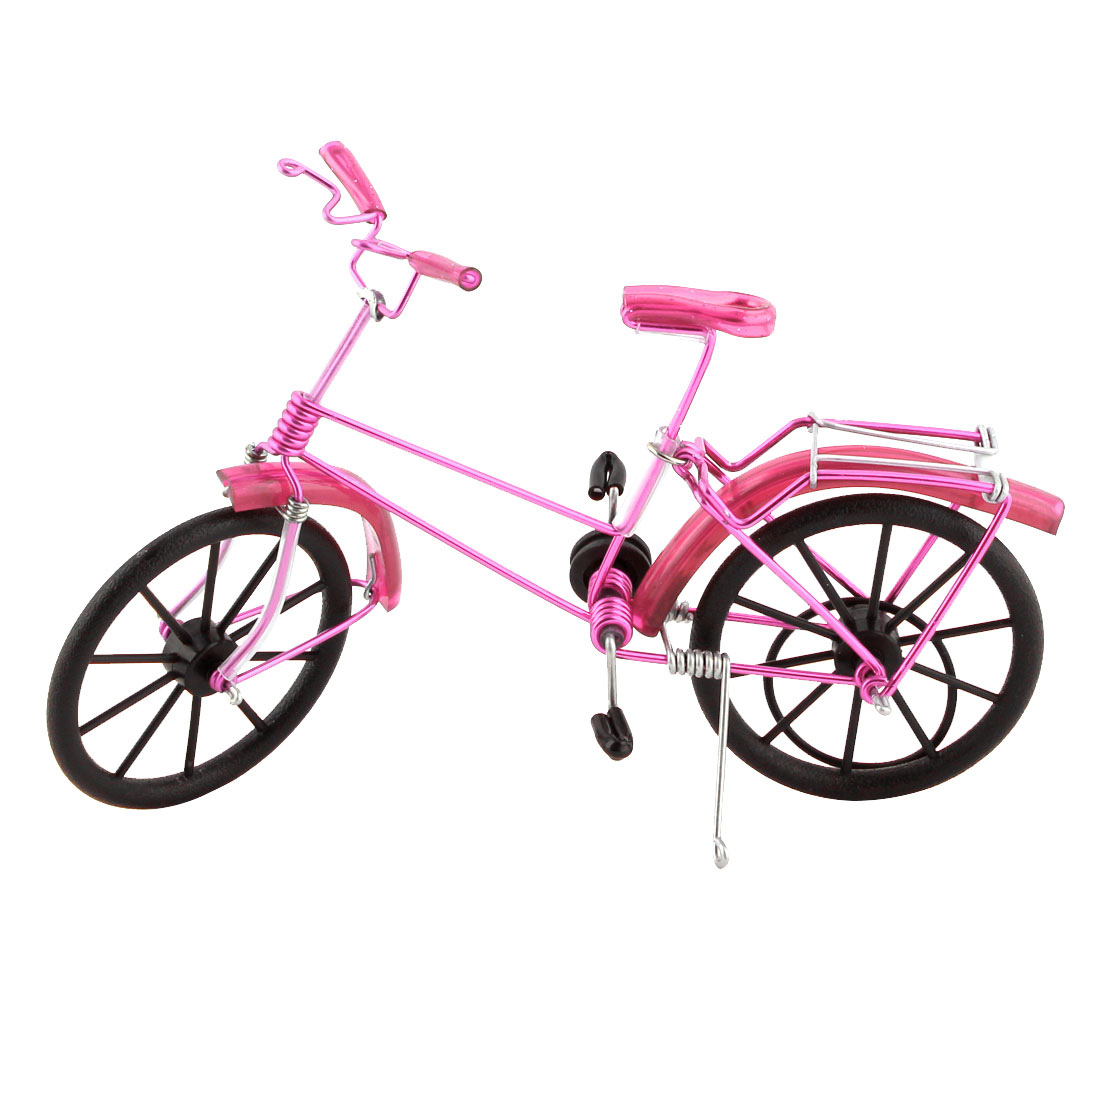 Handmade Craft Table Ornament Collection Figurine Toy Bicycle Model Decor Pink